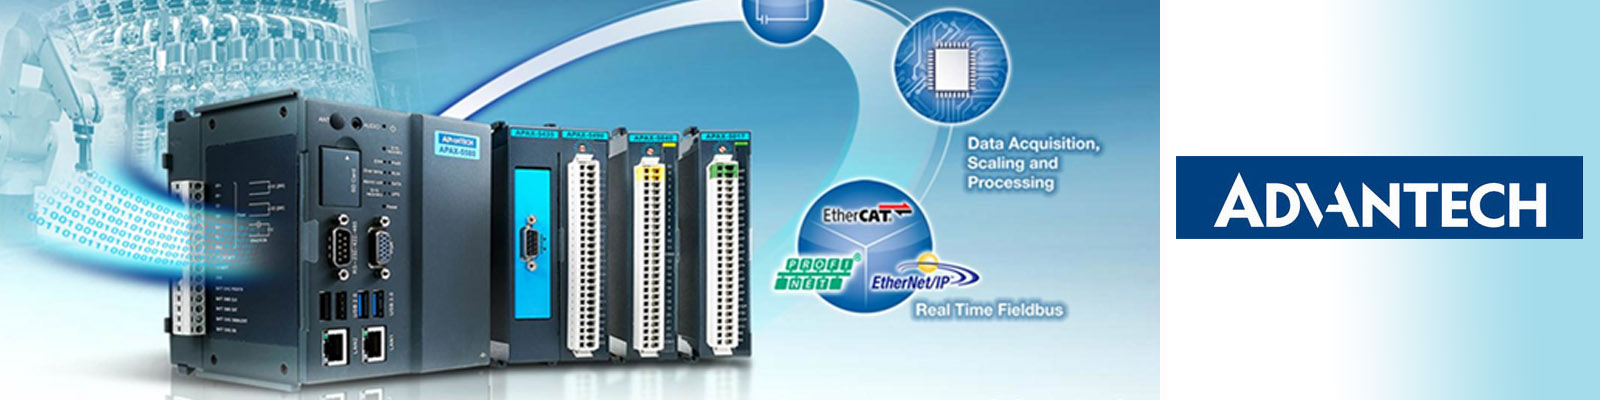 Advantech, Real time Fieldbus